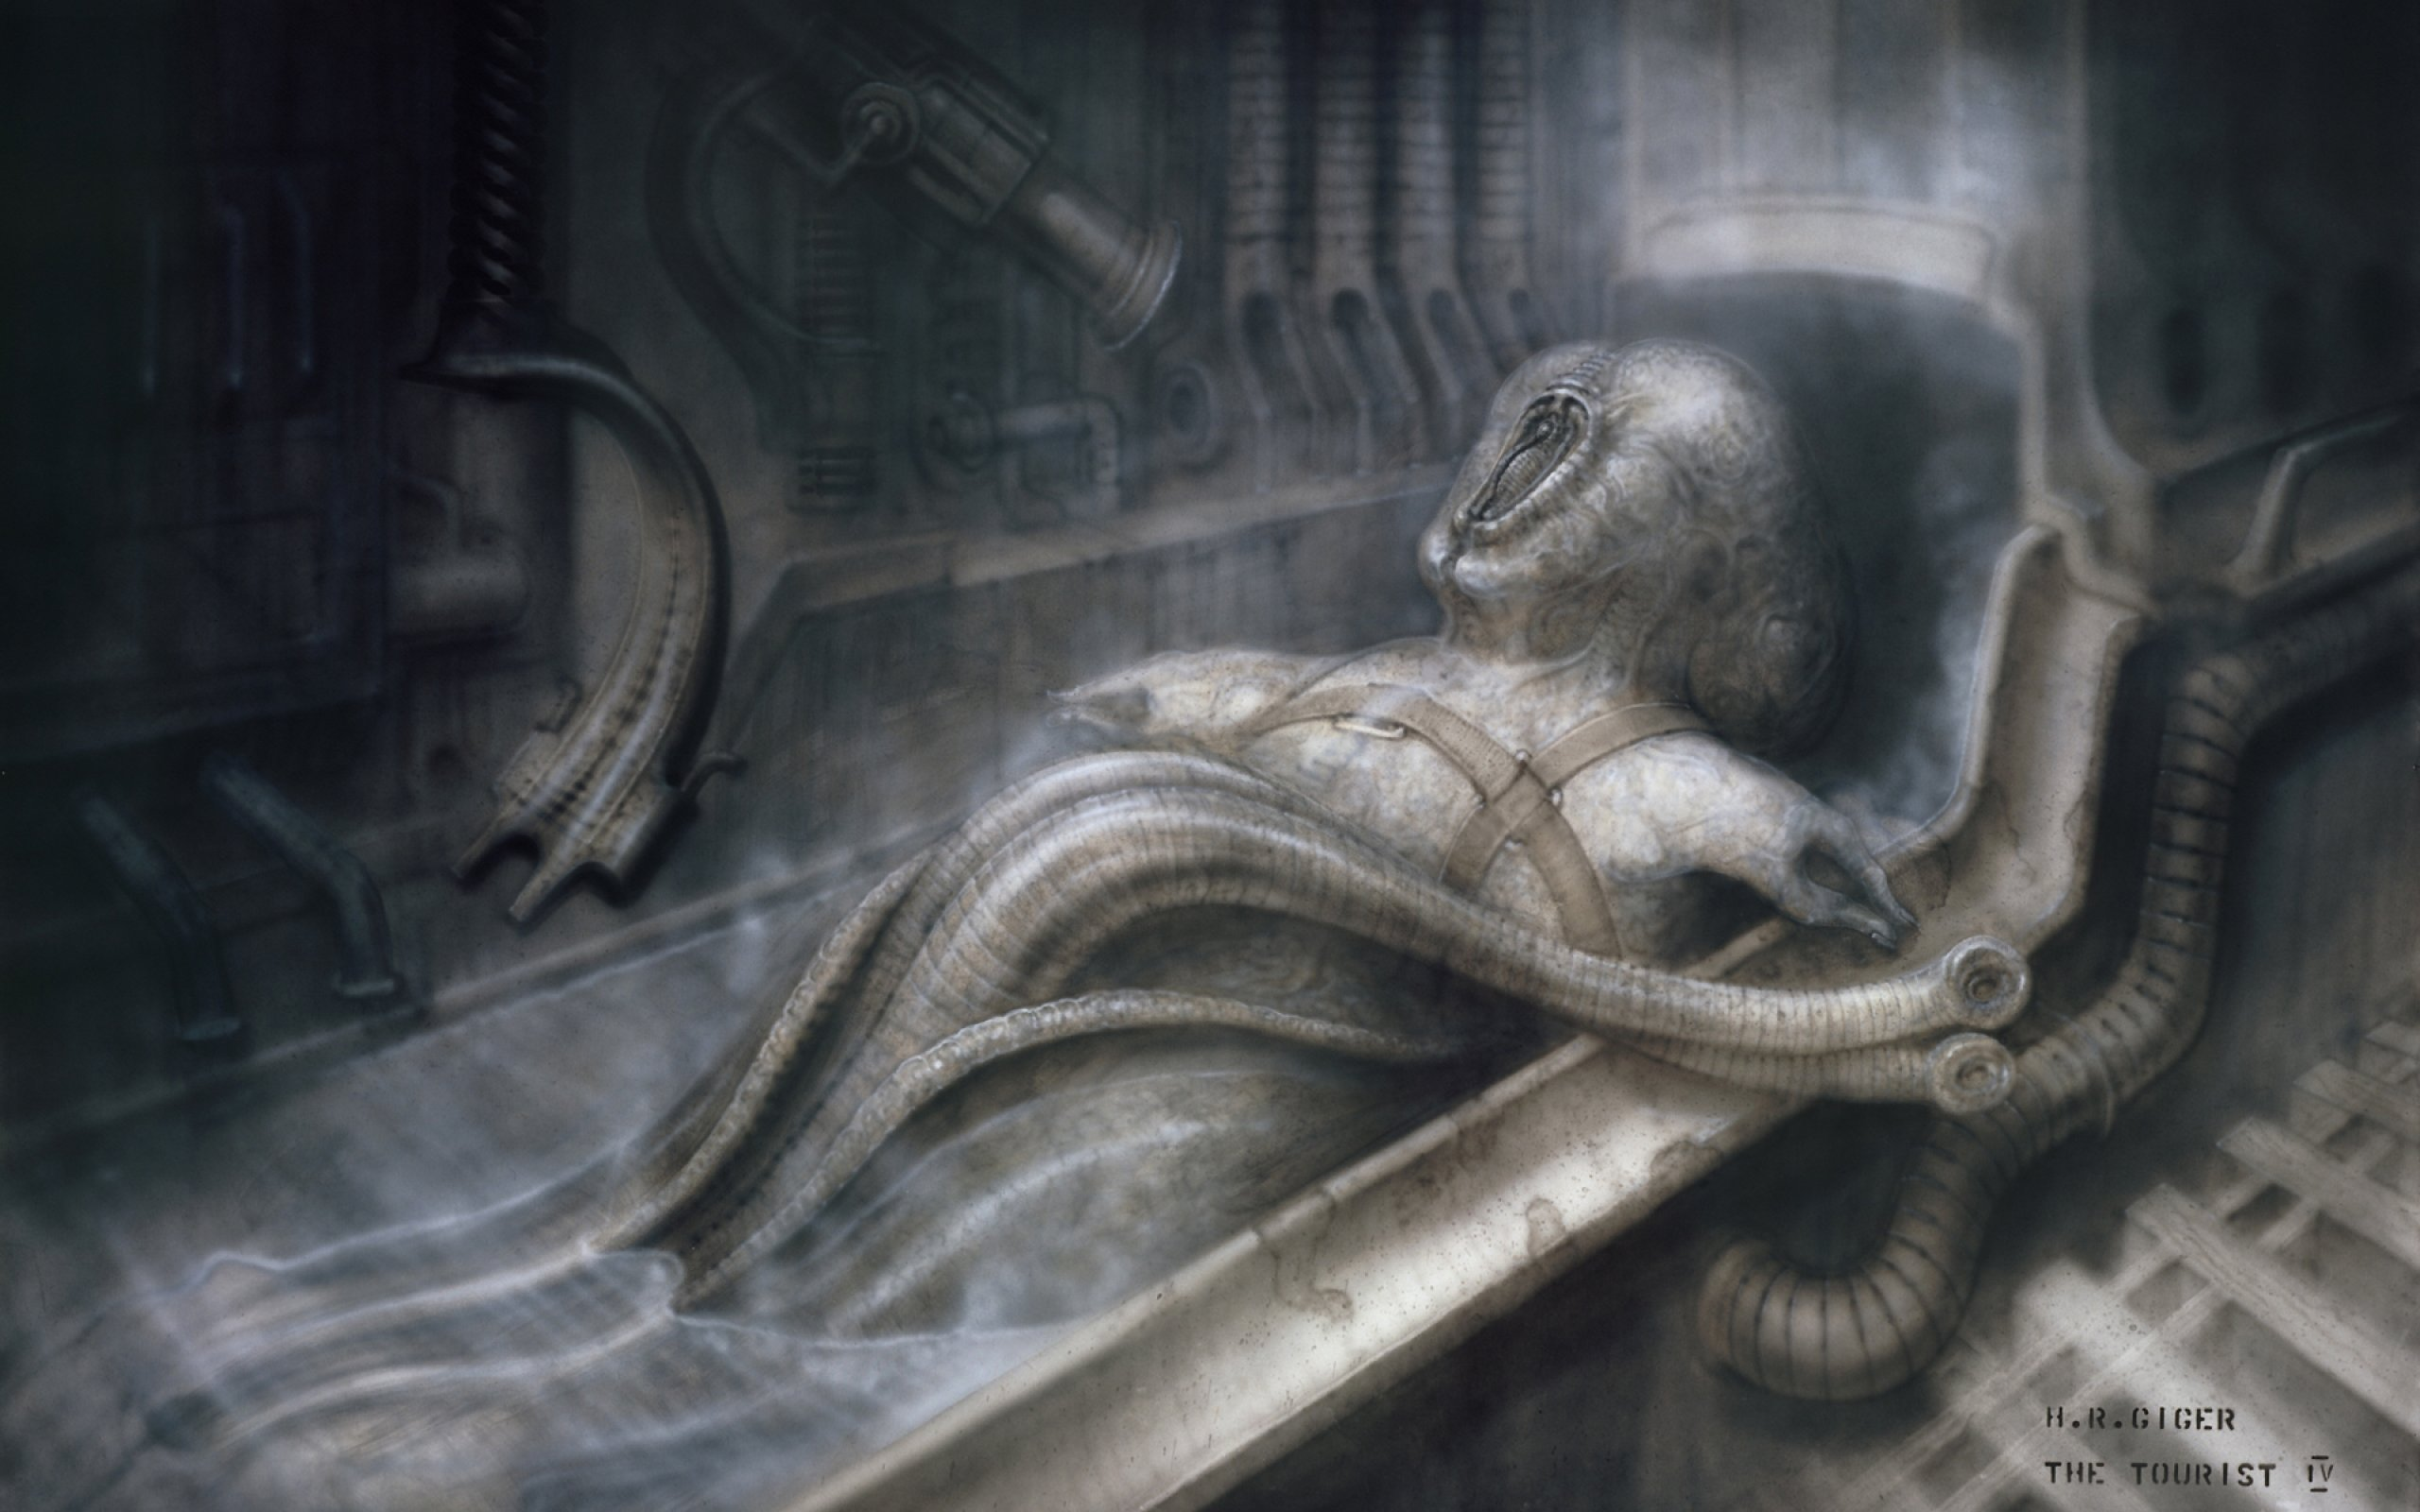 h r giger art artwork dark evil artistic horror fantasy